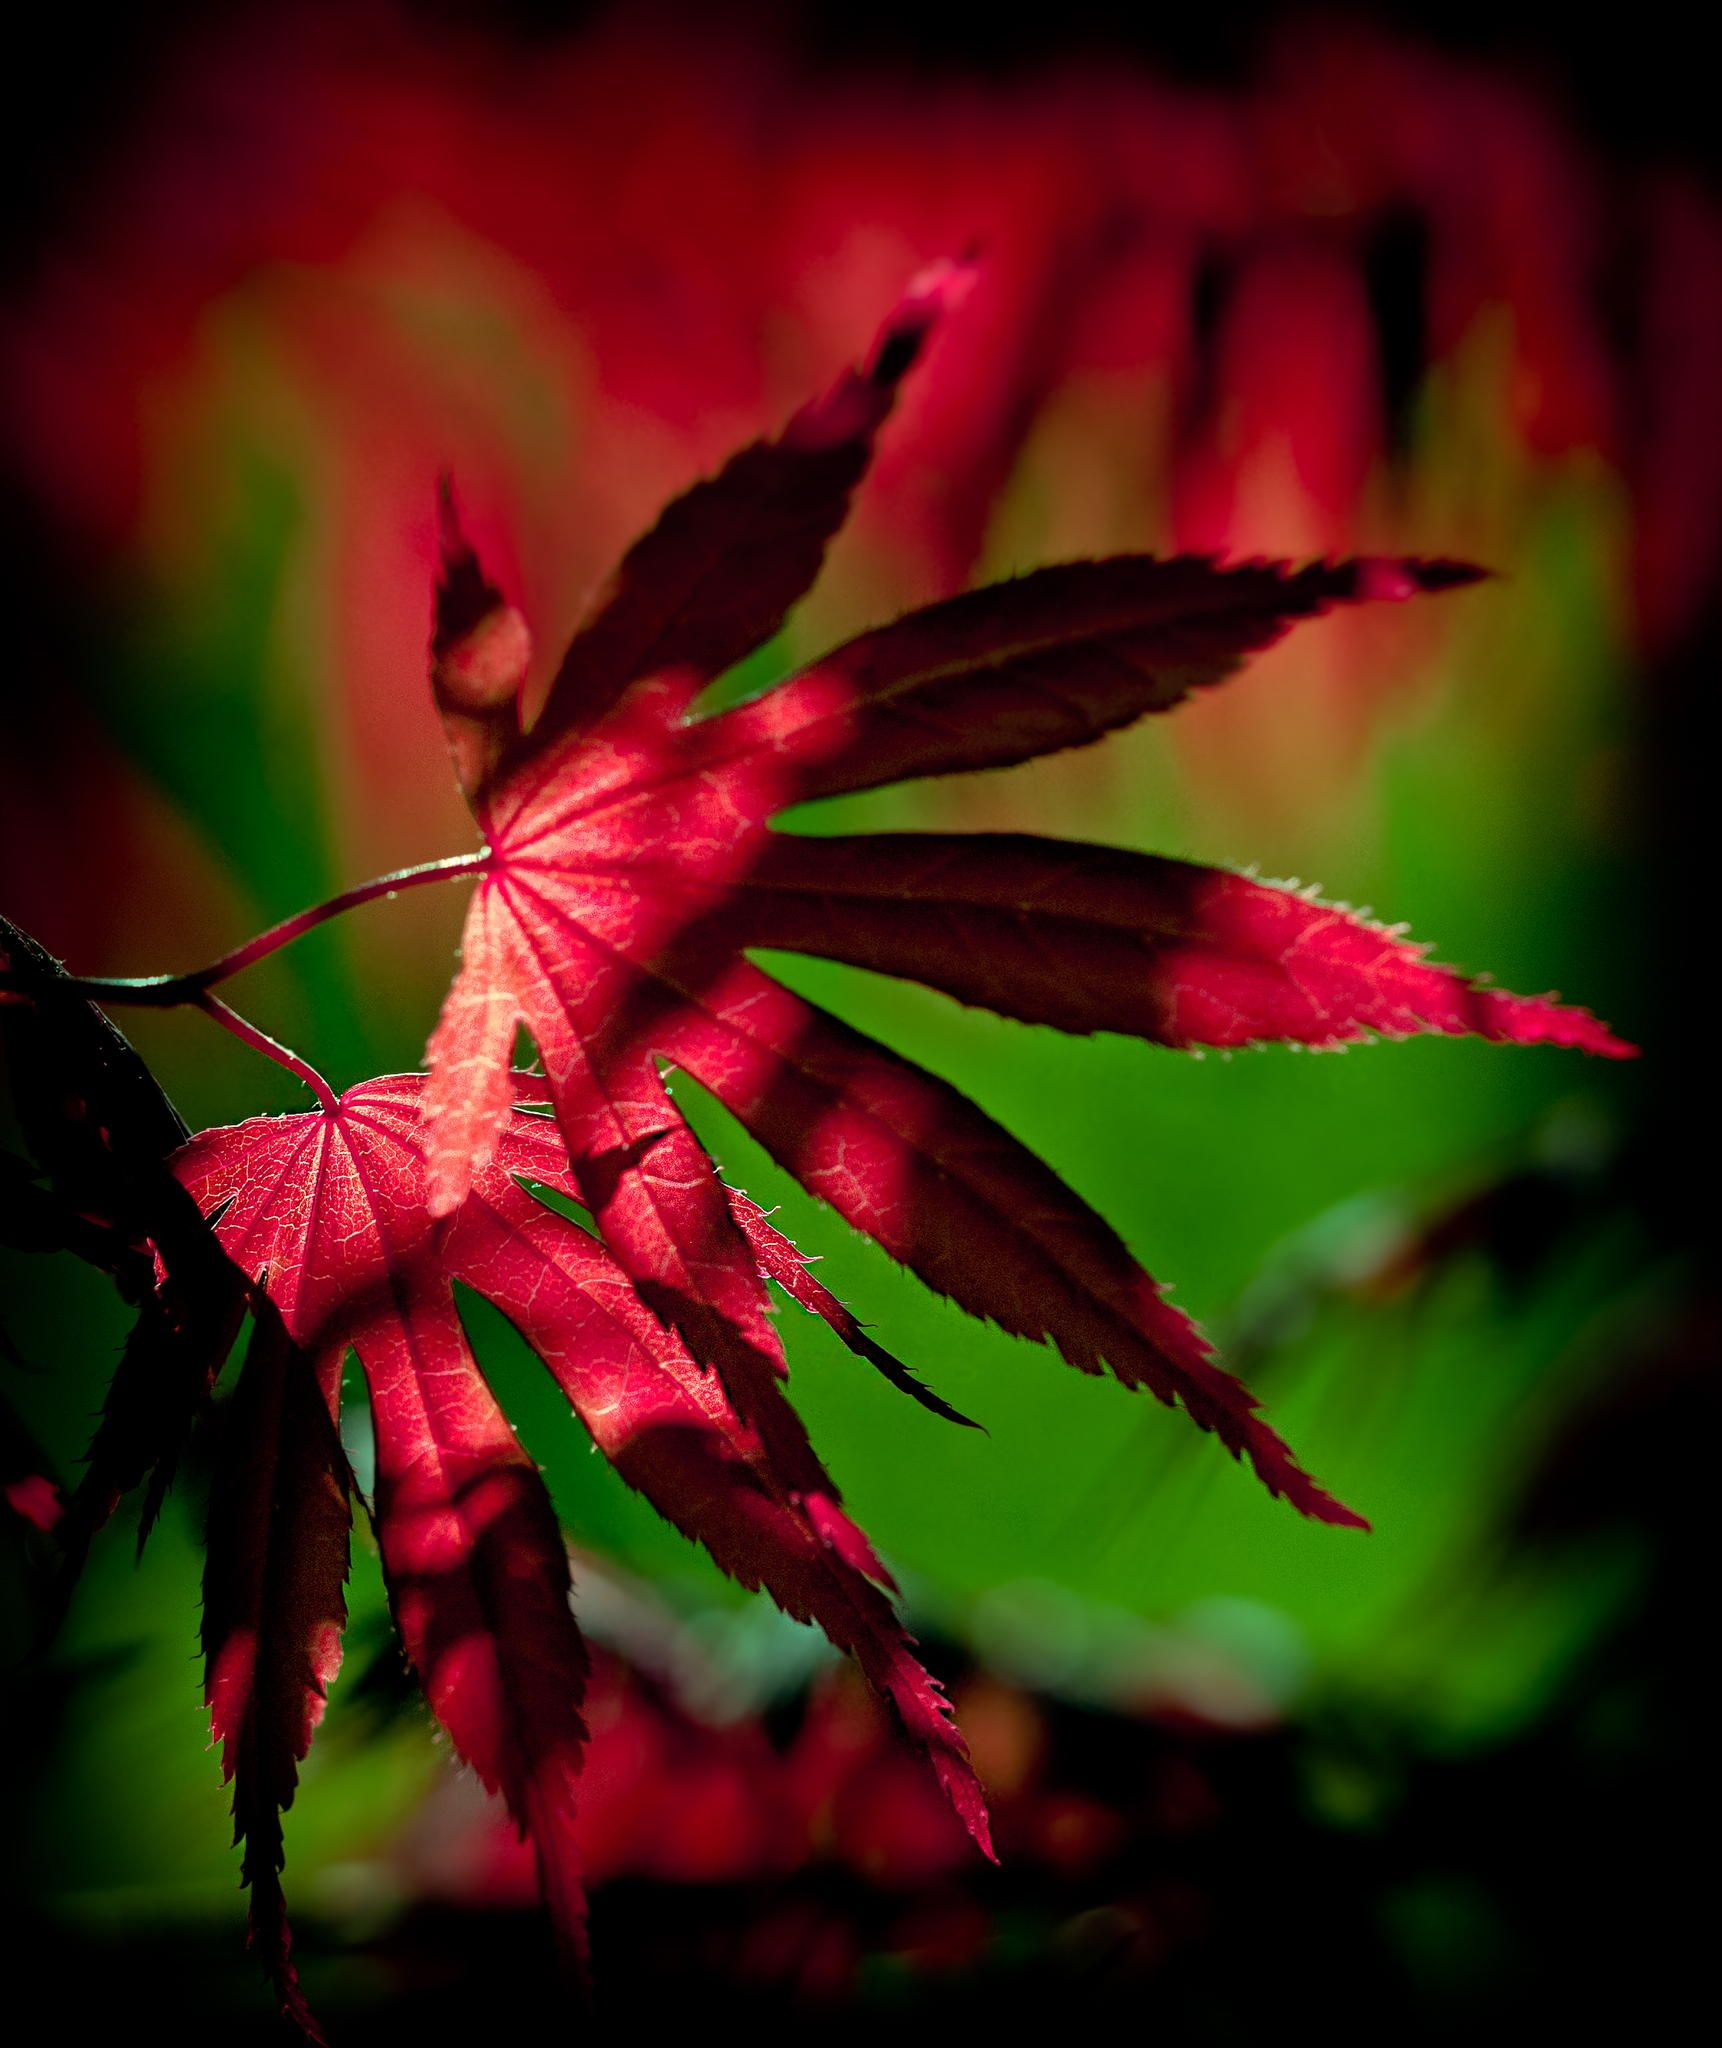 Red Maple by BRIAN KEYES on 500px